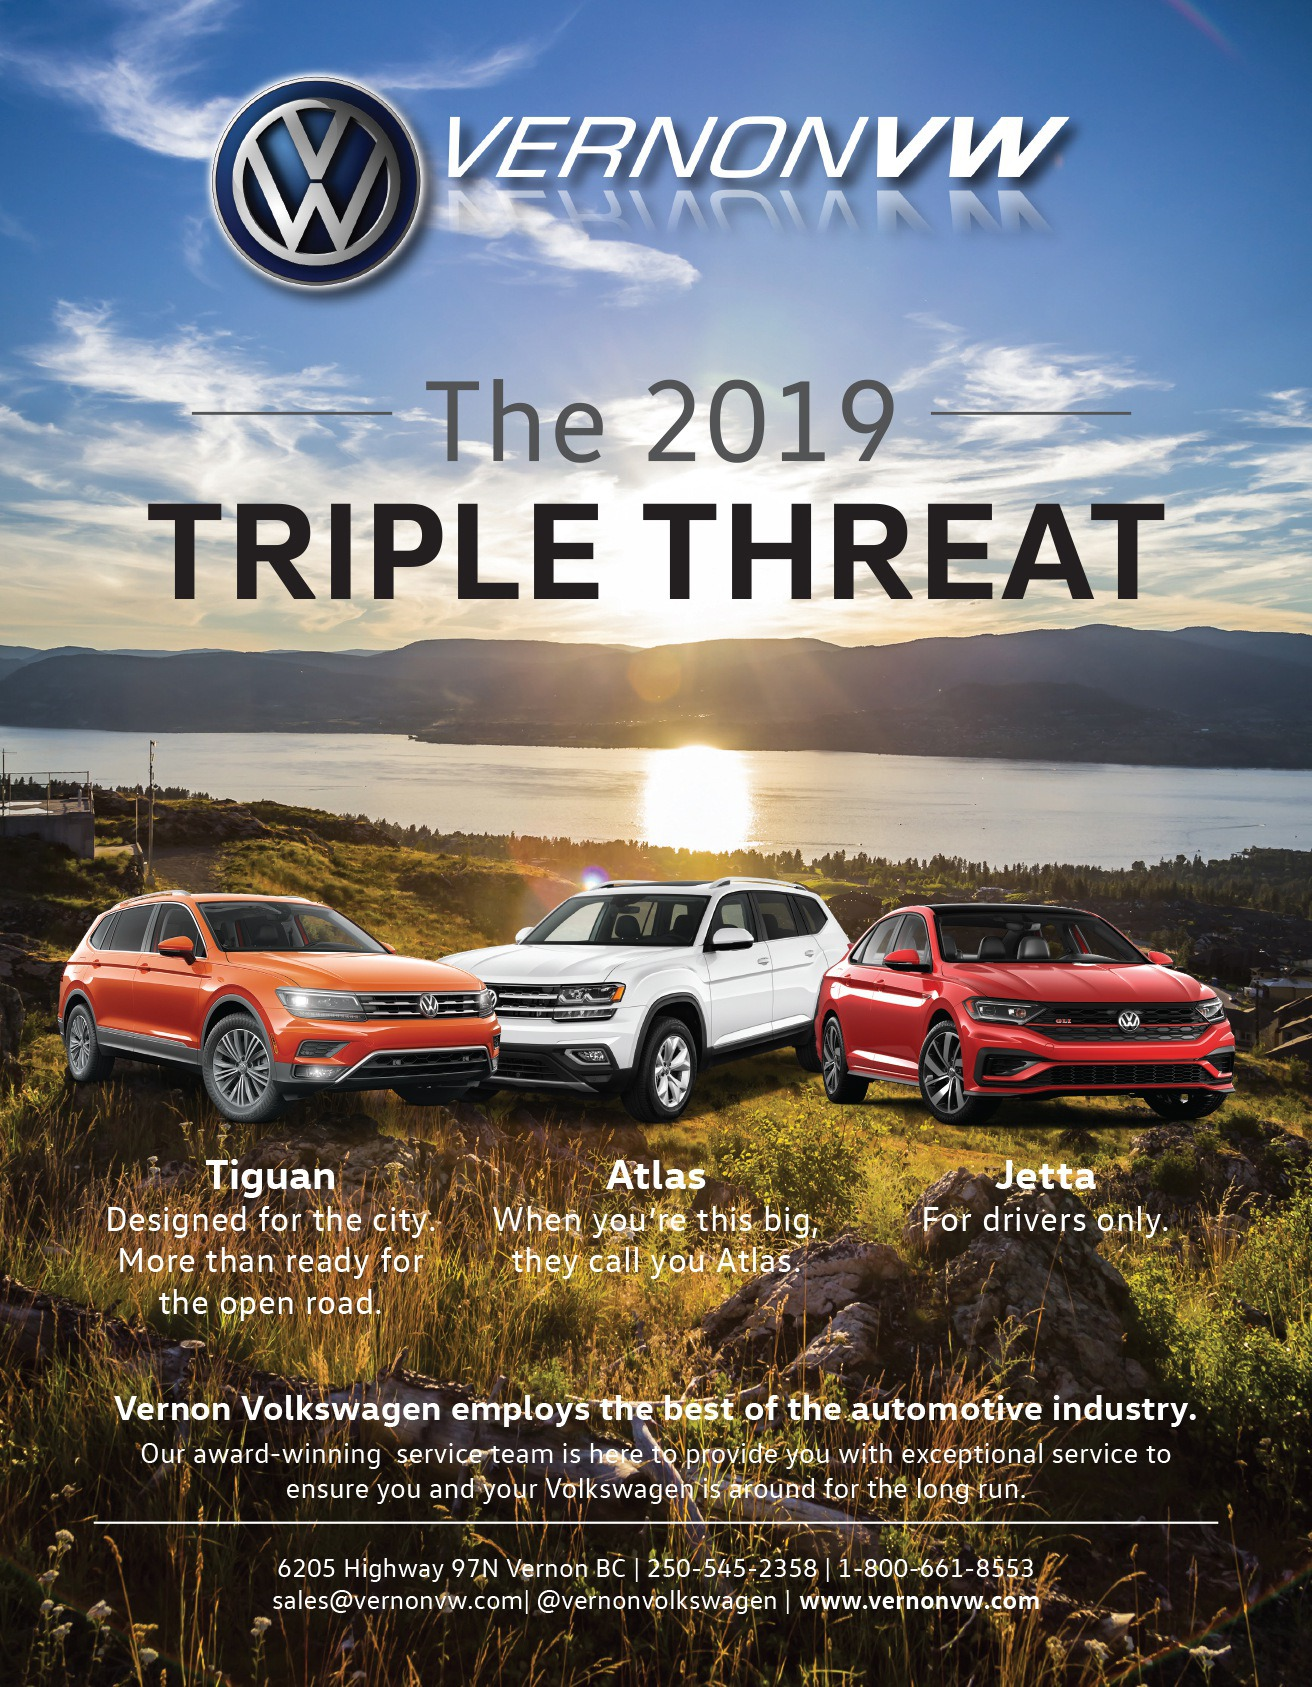 Vernon Volkswagen 2019 Triple Threat Ad - New and used auto dealership in Vernon BC